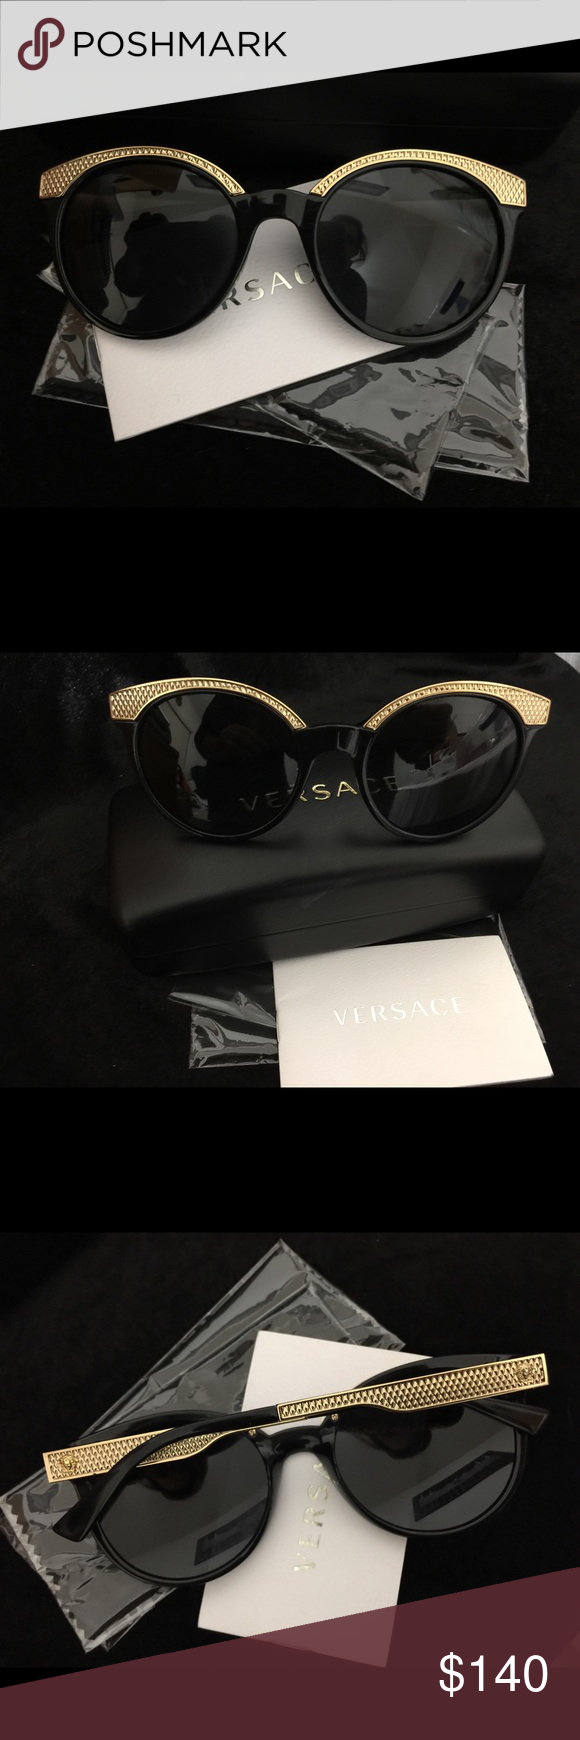 837c00fd4 Versace ladies sun glasses price reduction Beautiful Versace sun glasses in  black and gold color, gently used in perfect good condition .